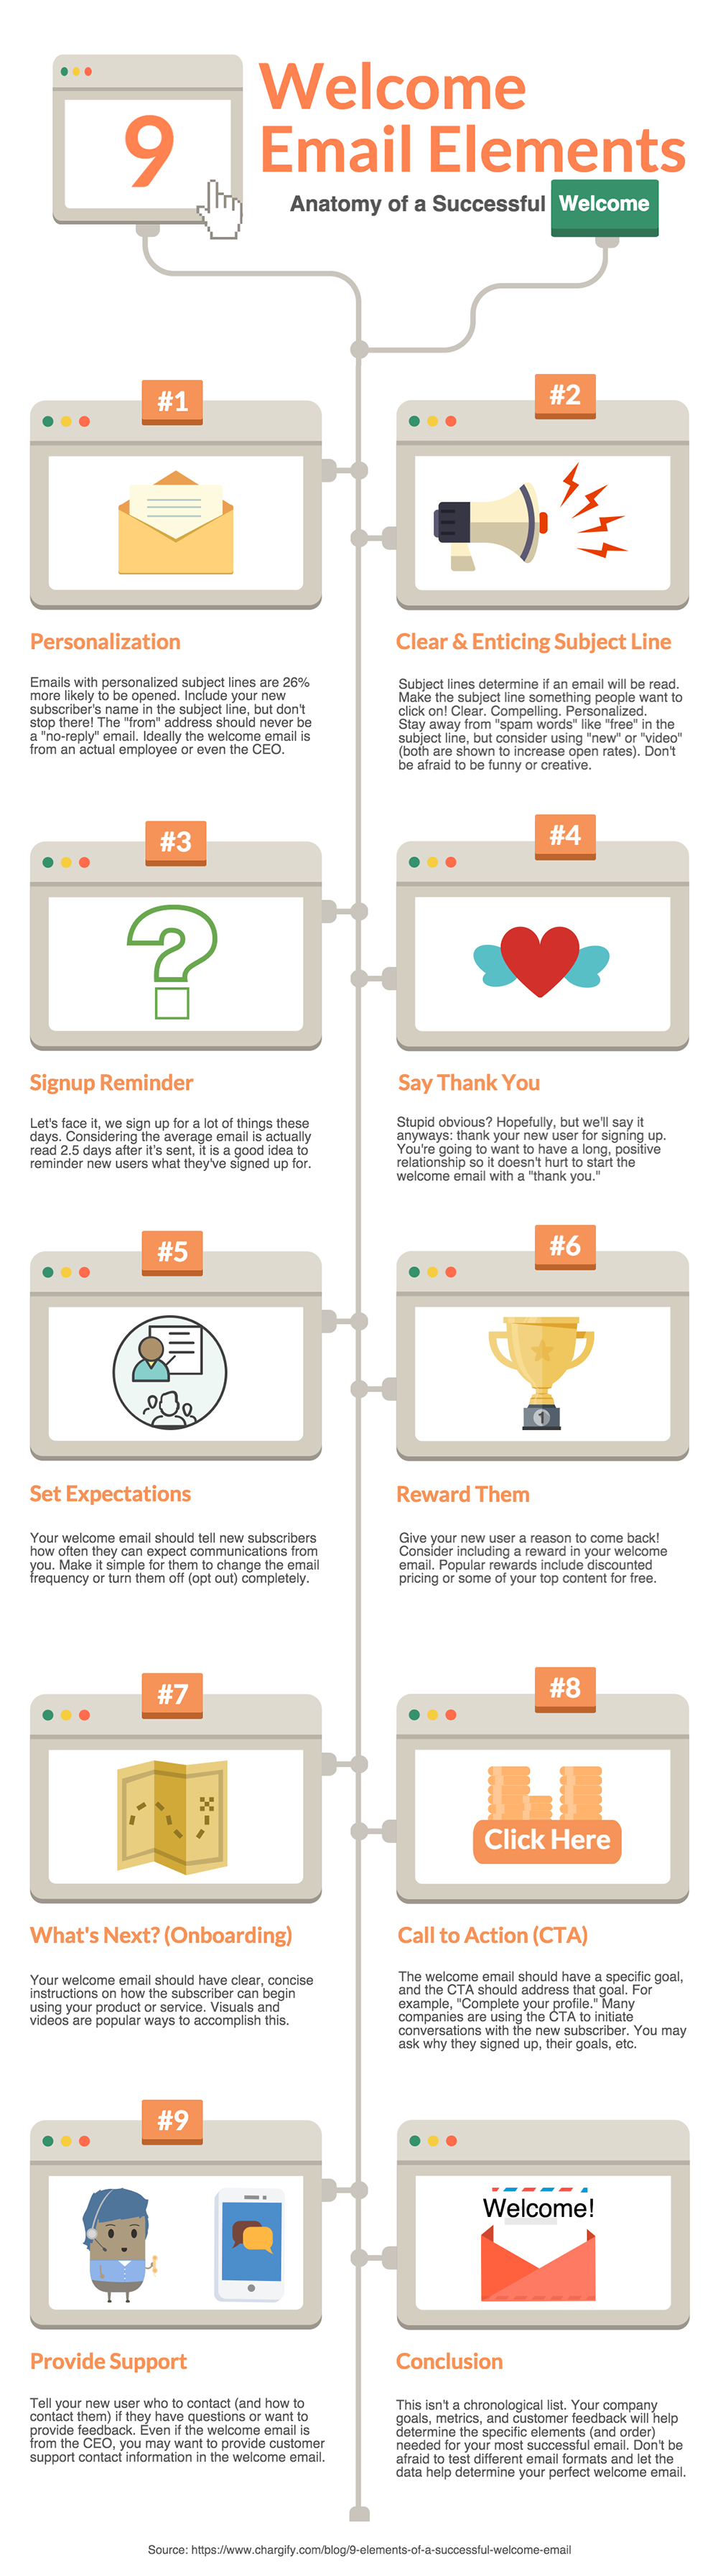 Welcome-Email-Anatomy-Infographic